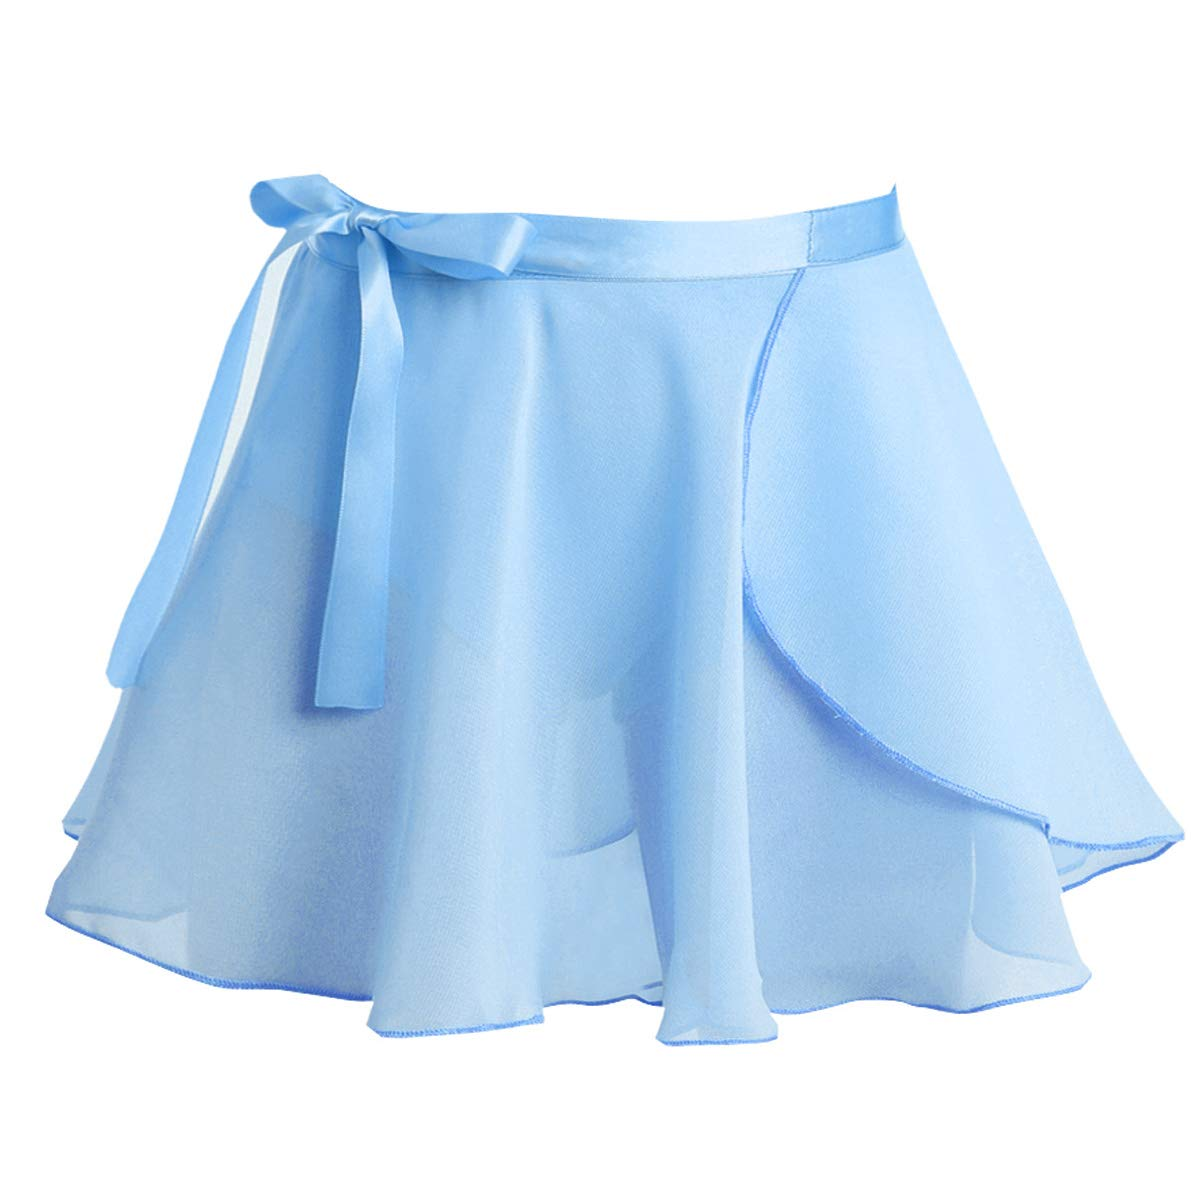 TiaoBug Girls' Ballet Dance Basic Wrap Over Scarf Chiffon Skirt with Tie Waist Collection Skate Workout Training Skorts Light Blue 3-4 by TiaoBug